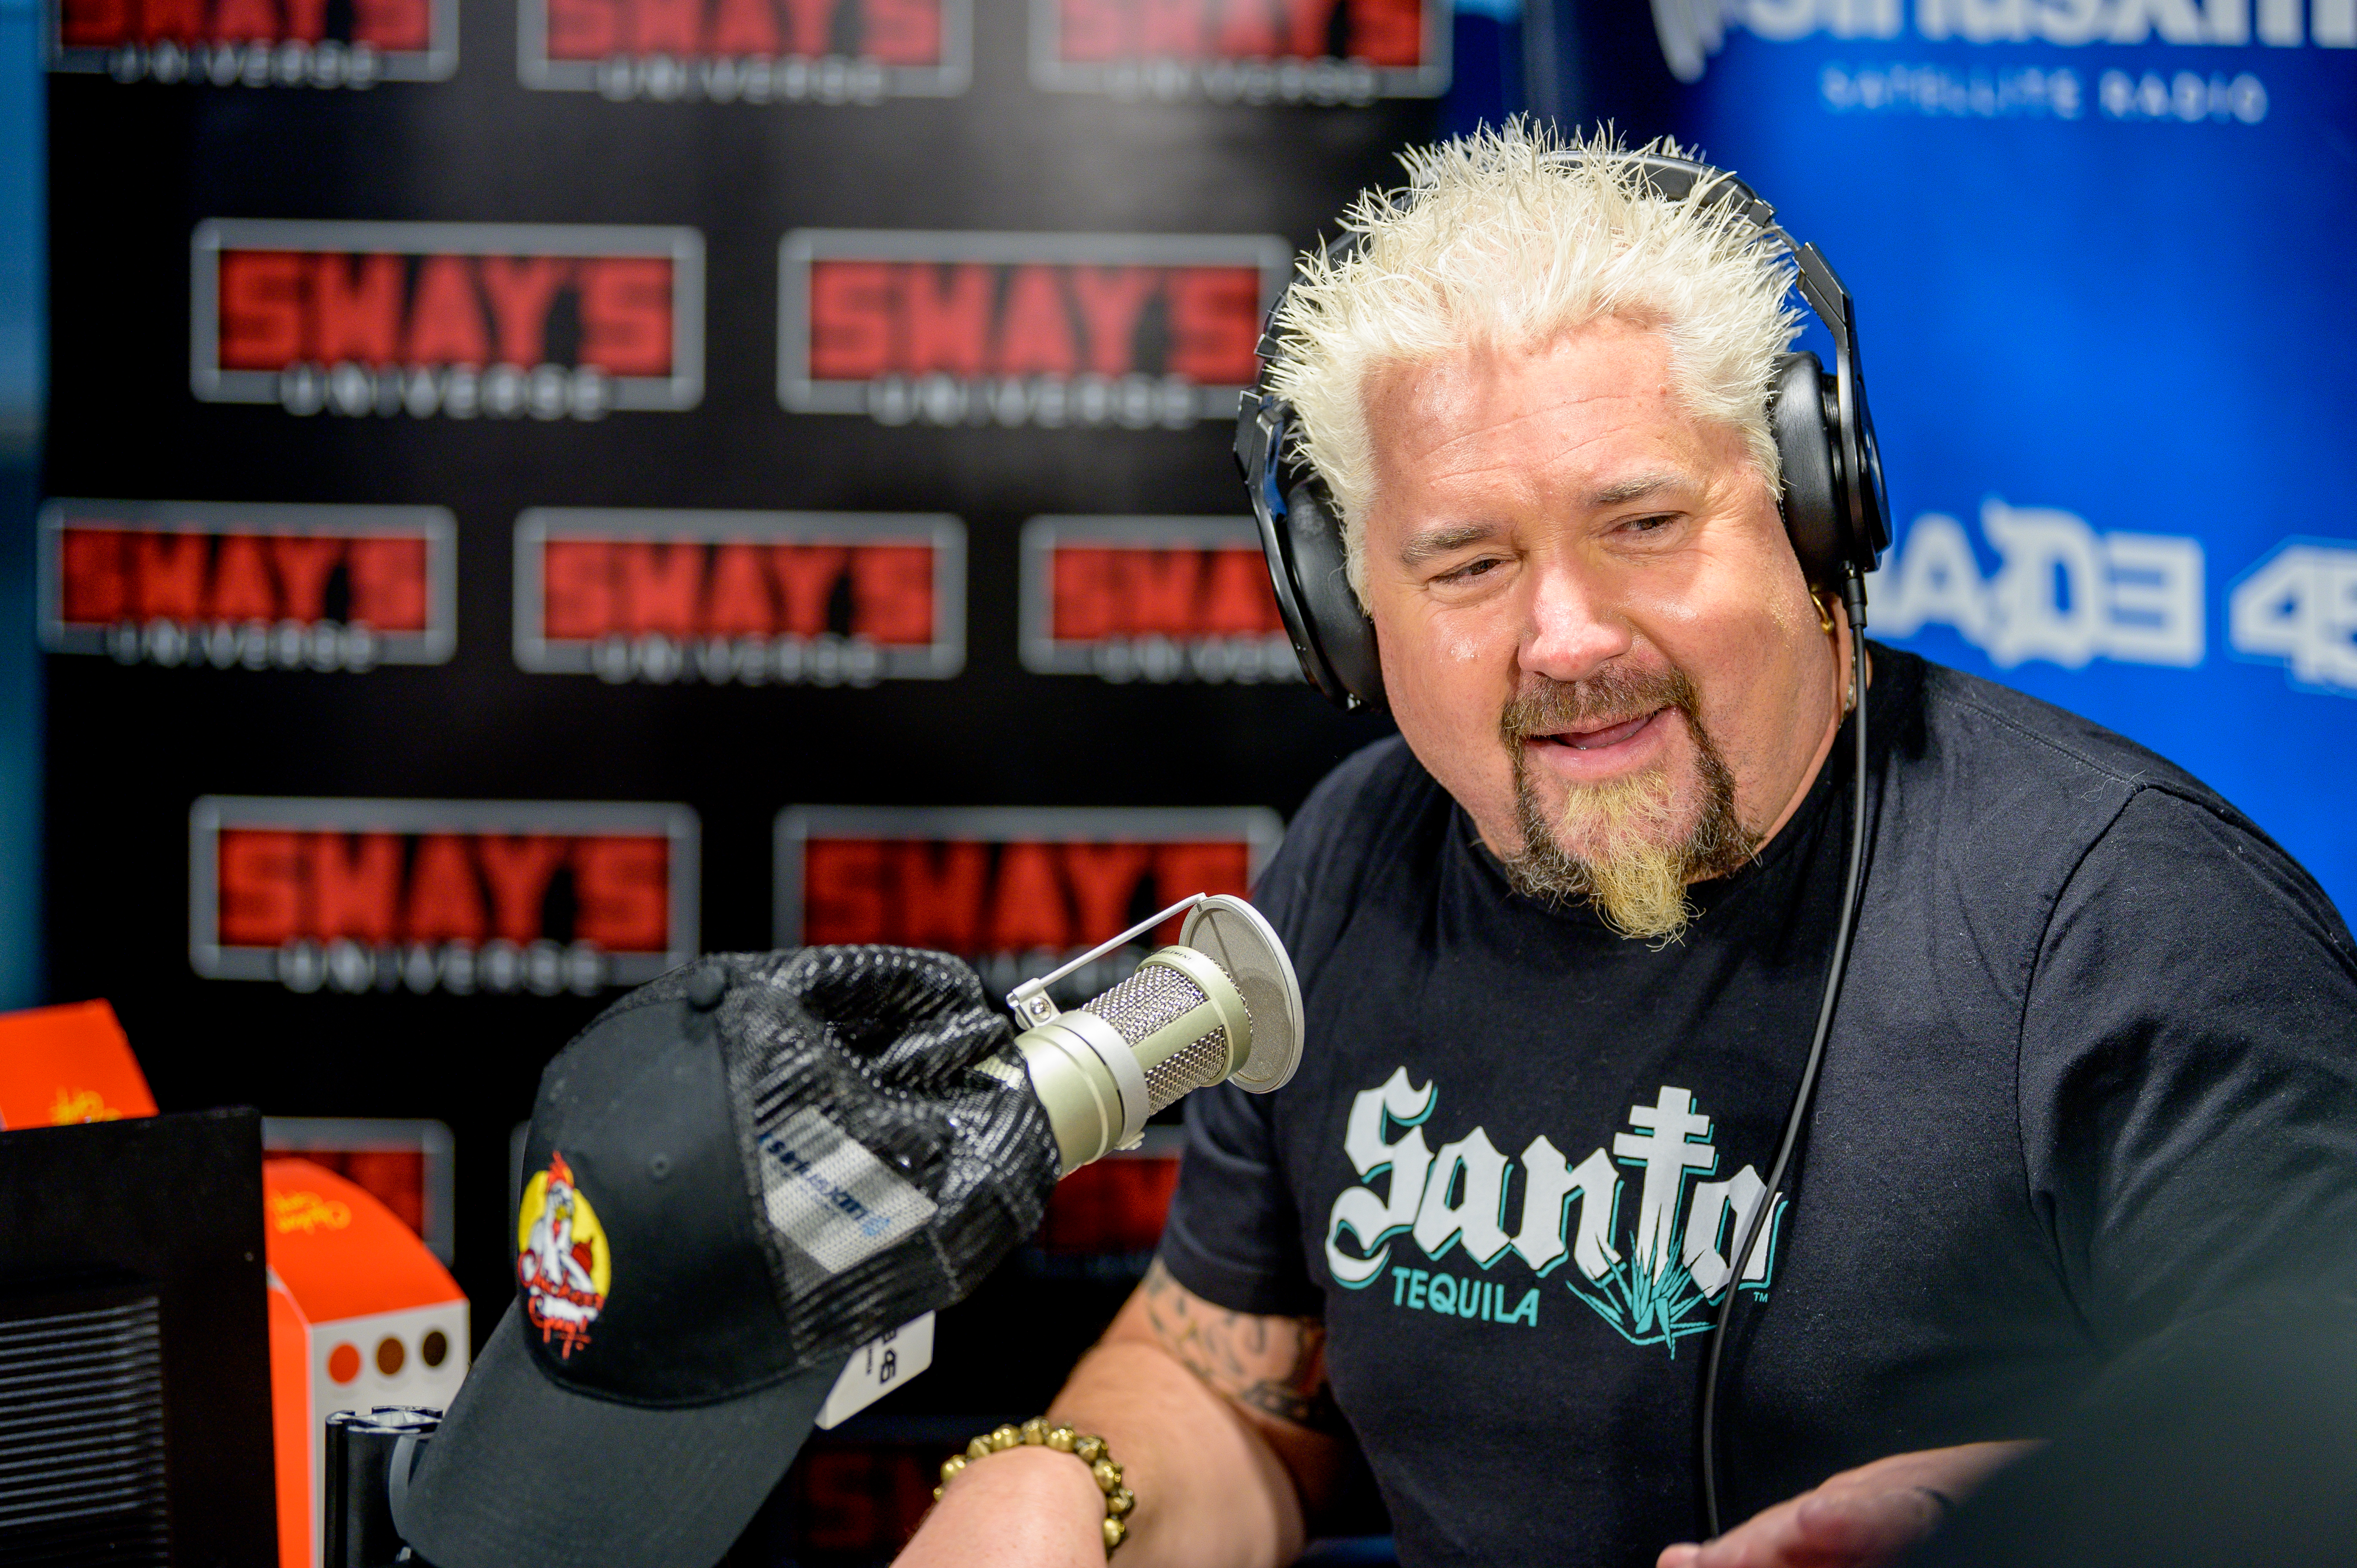 With his signature spiked blond hair and goatee, Guy Fieri wears headphones and a dark blue t-shirt while recording a radio interview.